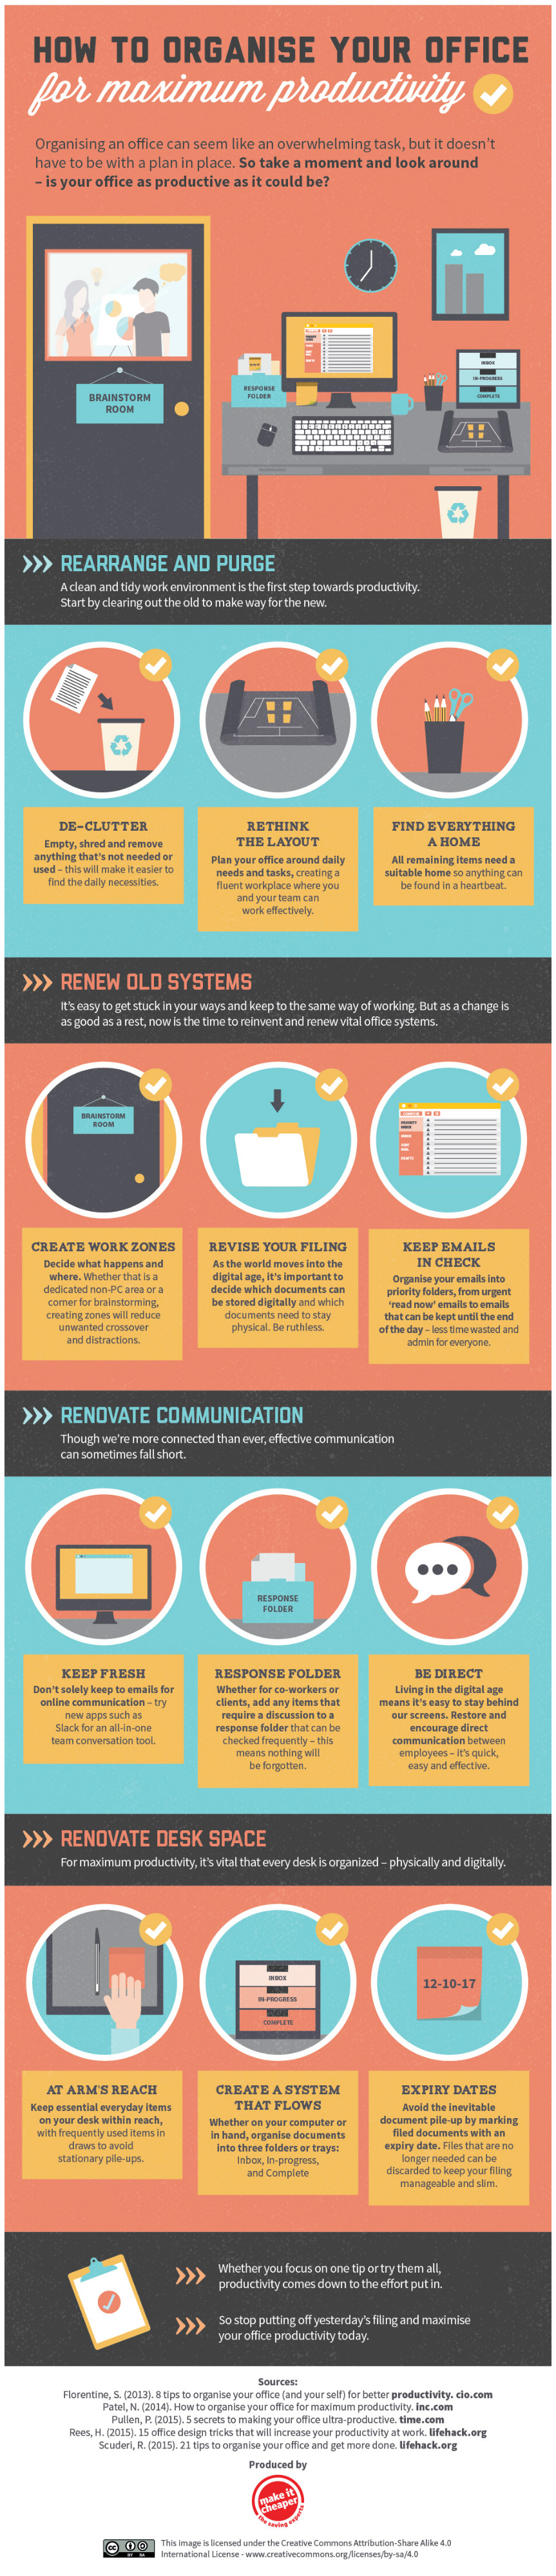 How To Organize Your Office For Maximum Productivity [Infographic]